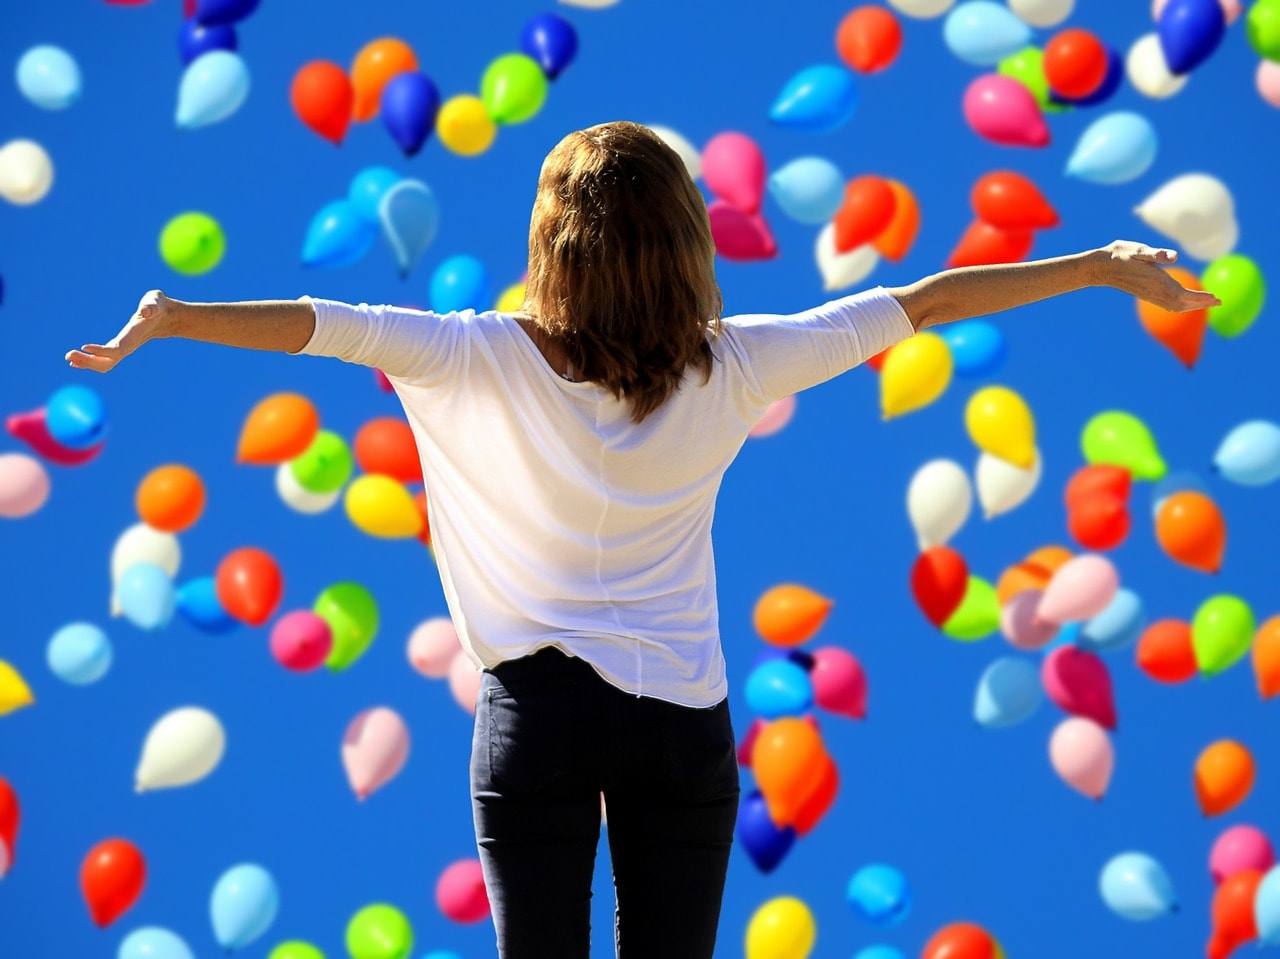 woman standing with arms outstretched before a blue sky filled with colourful balloons - ME CFS Fibromyalgia Recovery